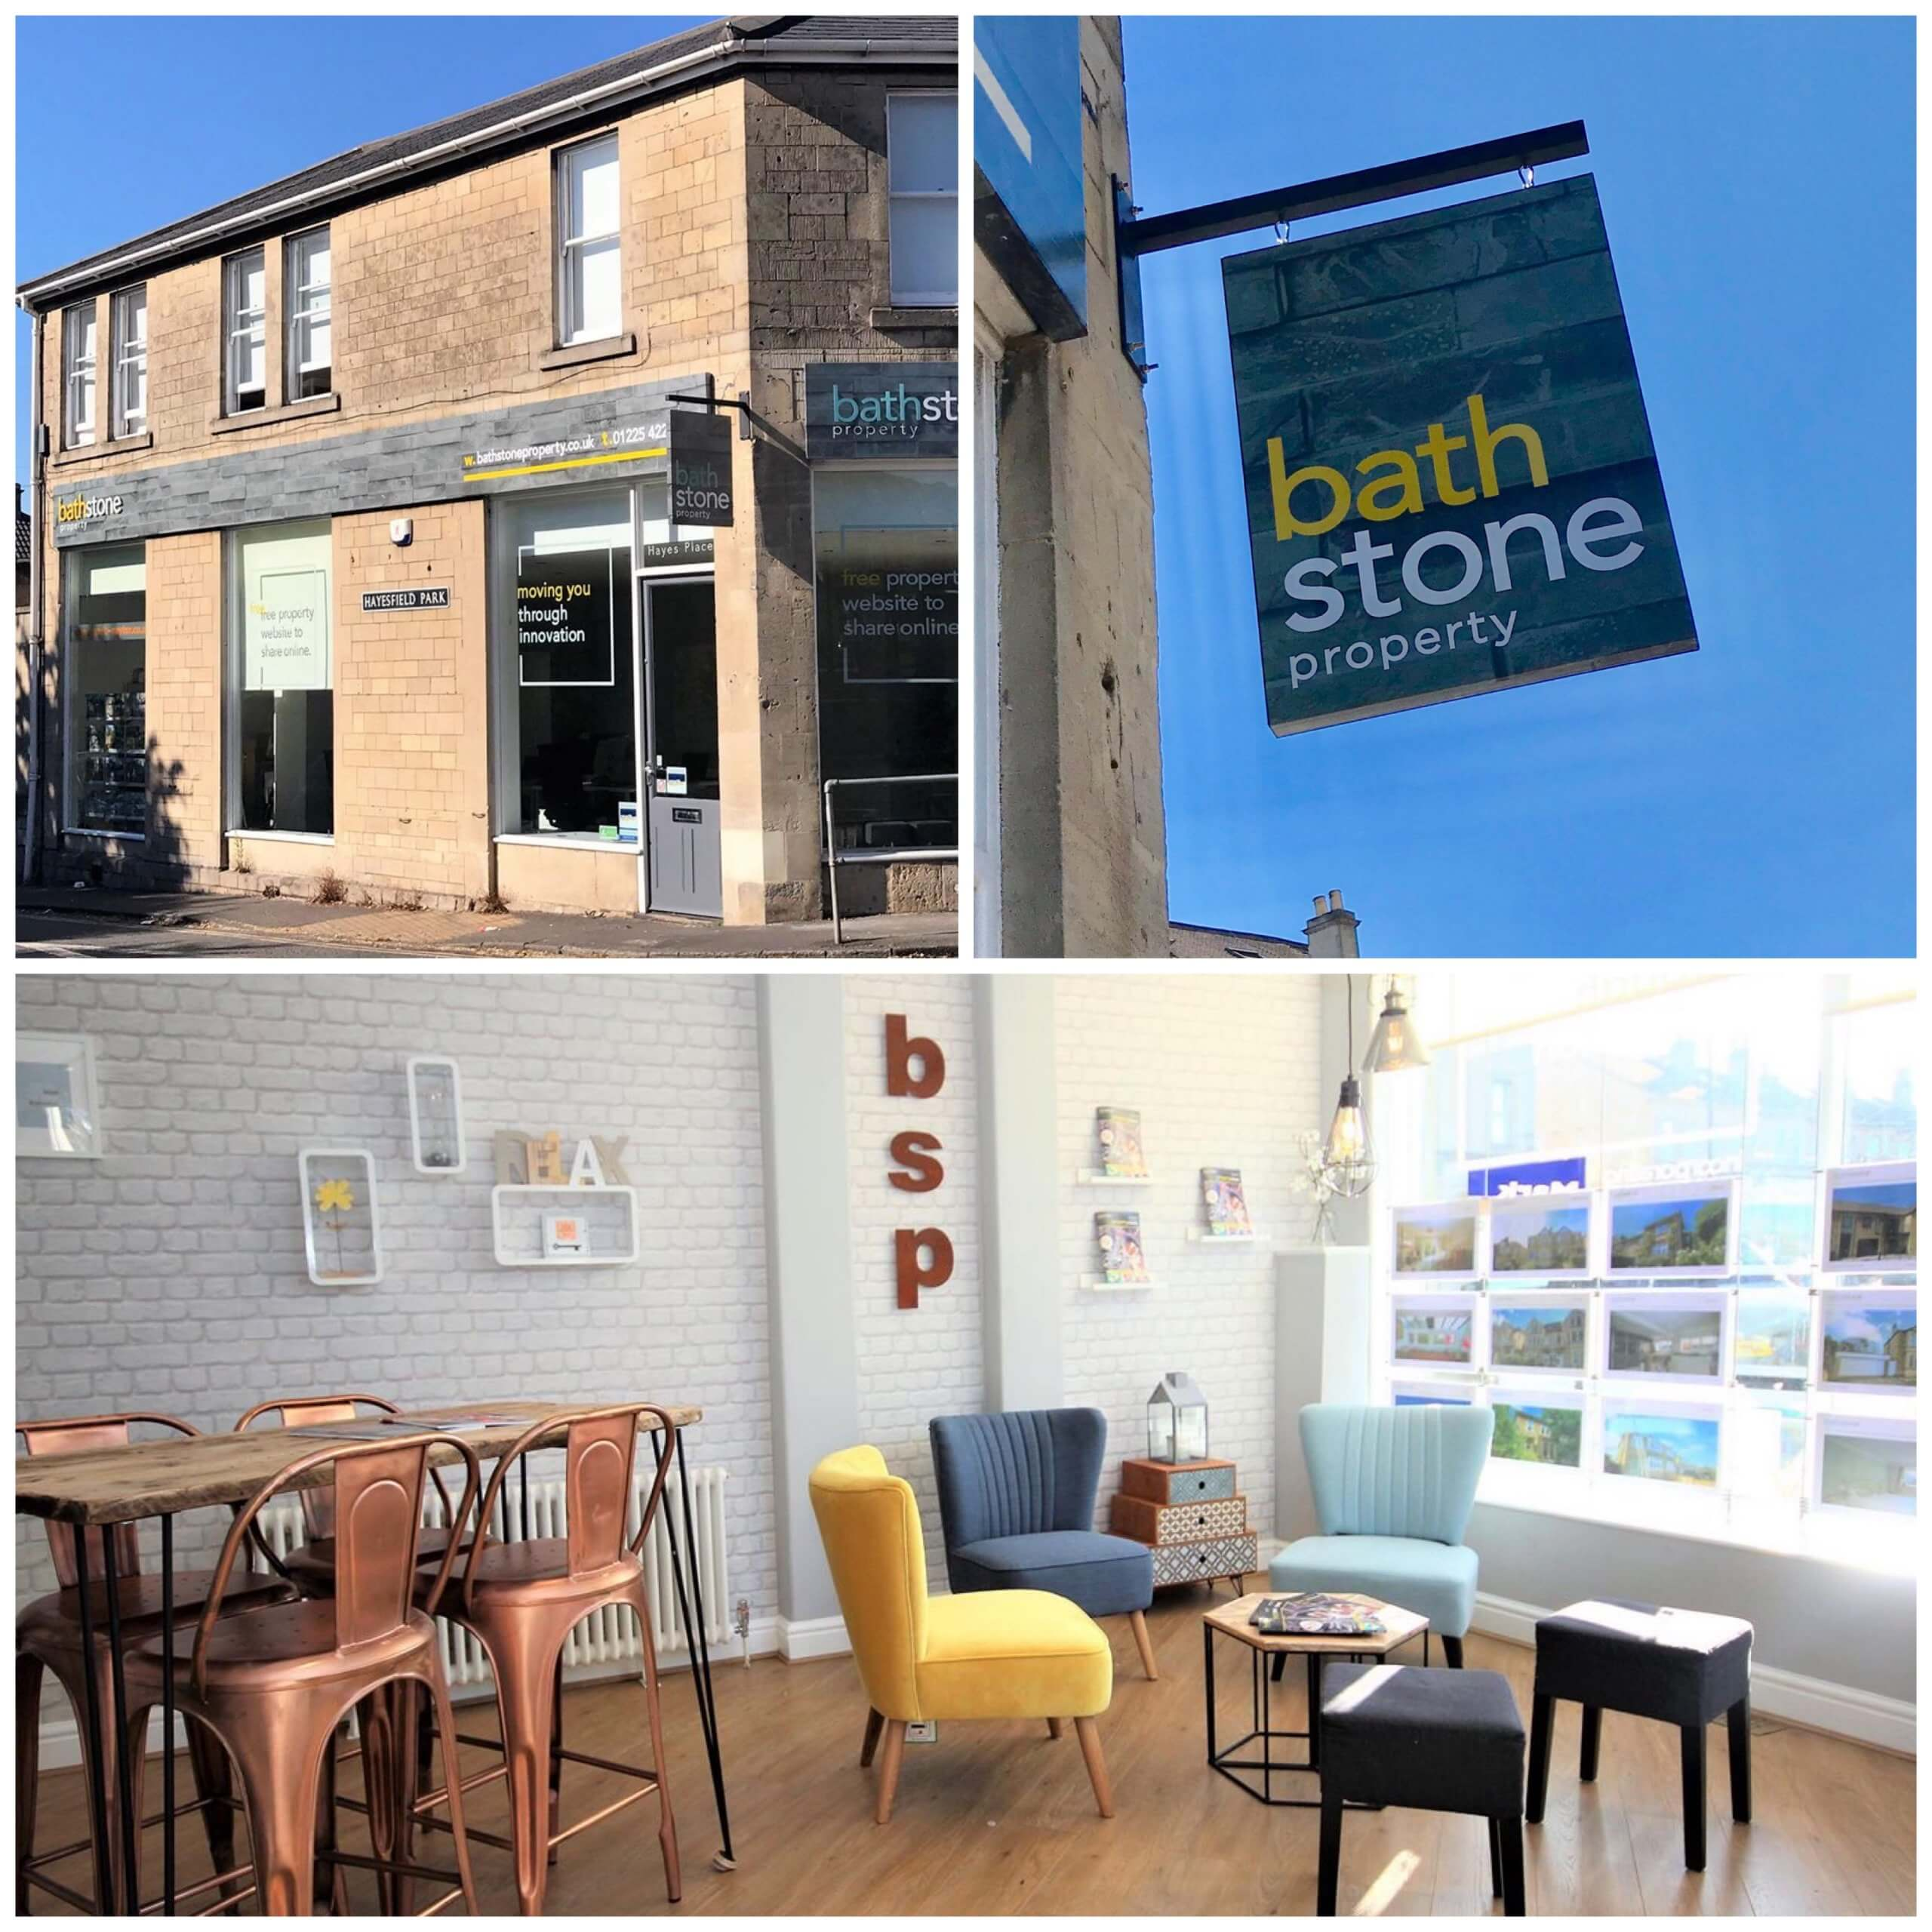 Bath Stone Property Office